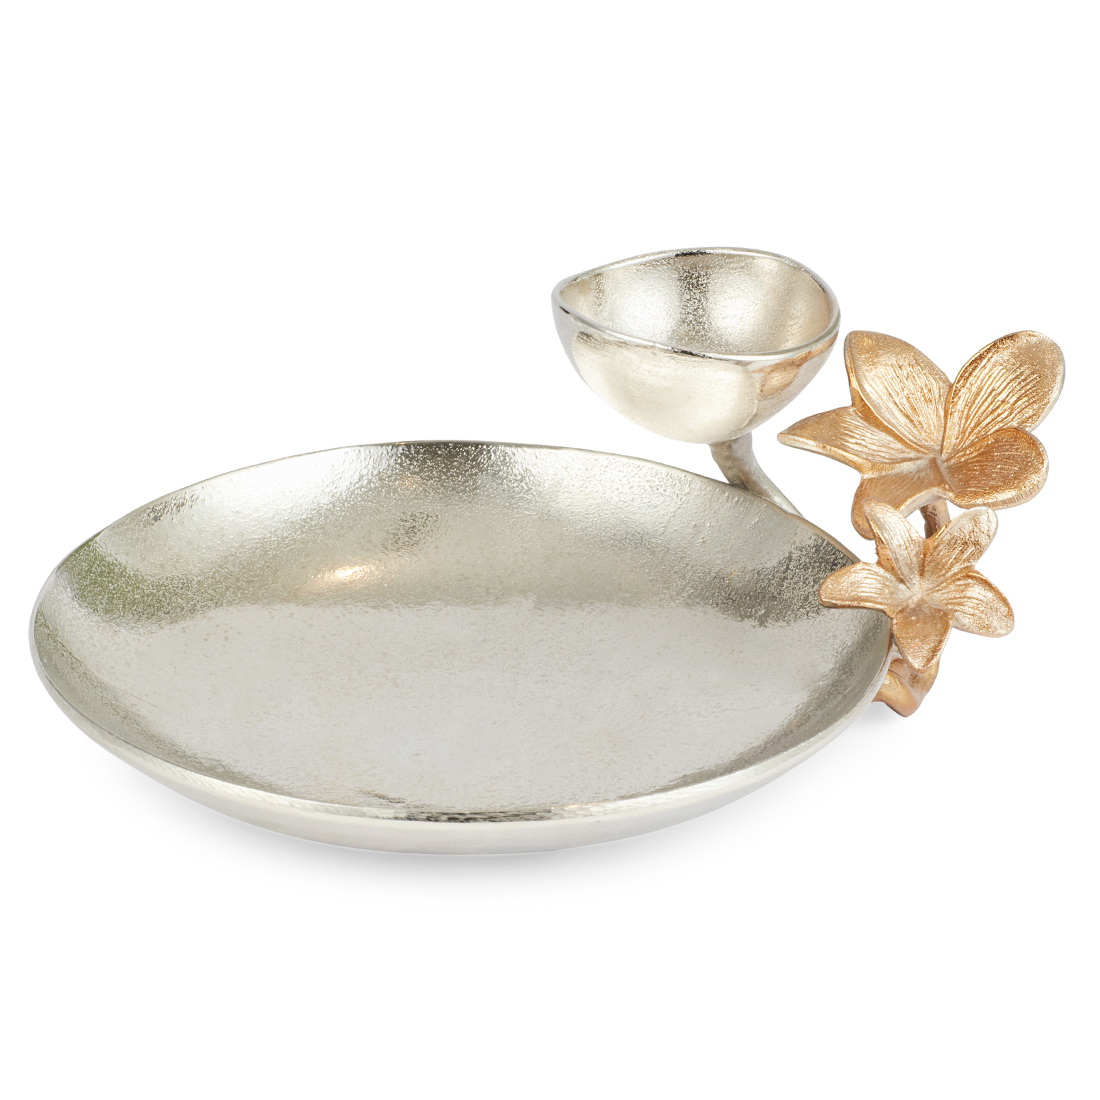 Jashn Silver Round Platter With Flower Accent Metal Table D in Silver Colour by Living Essence